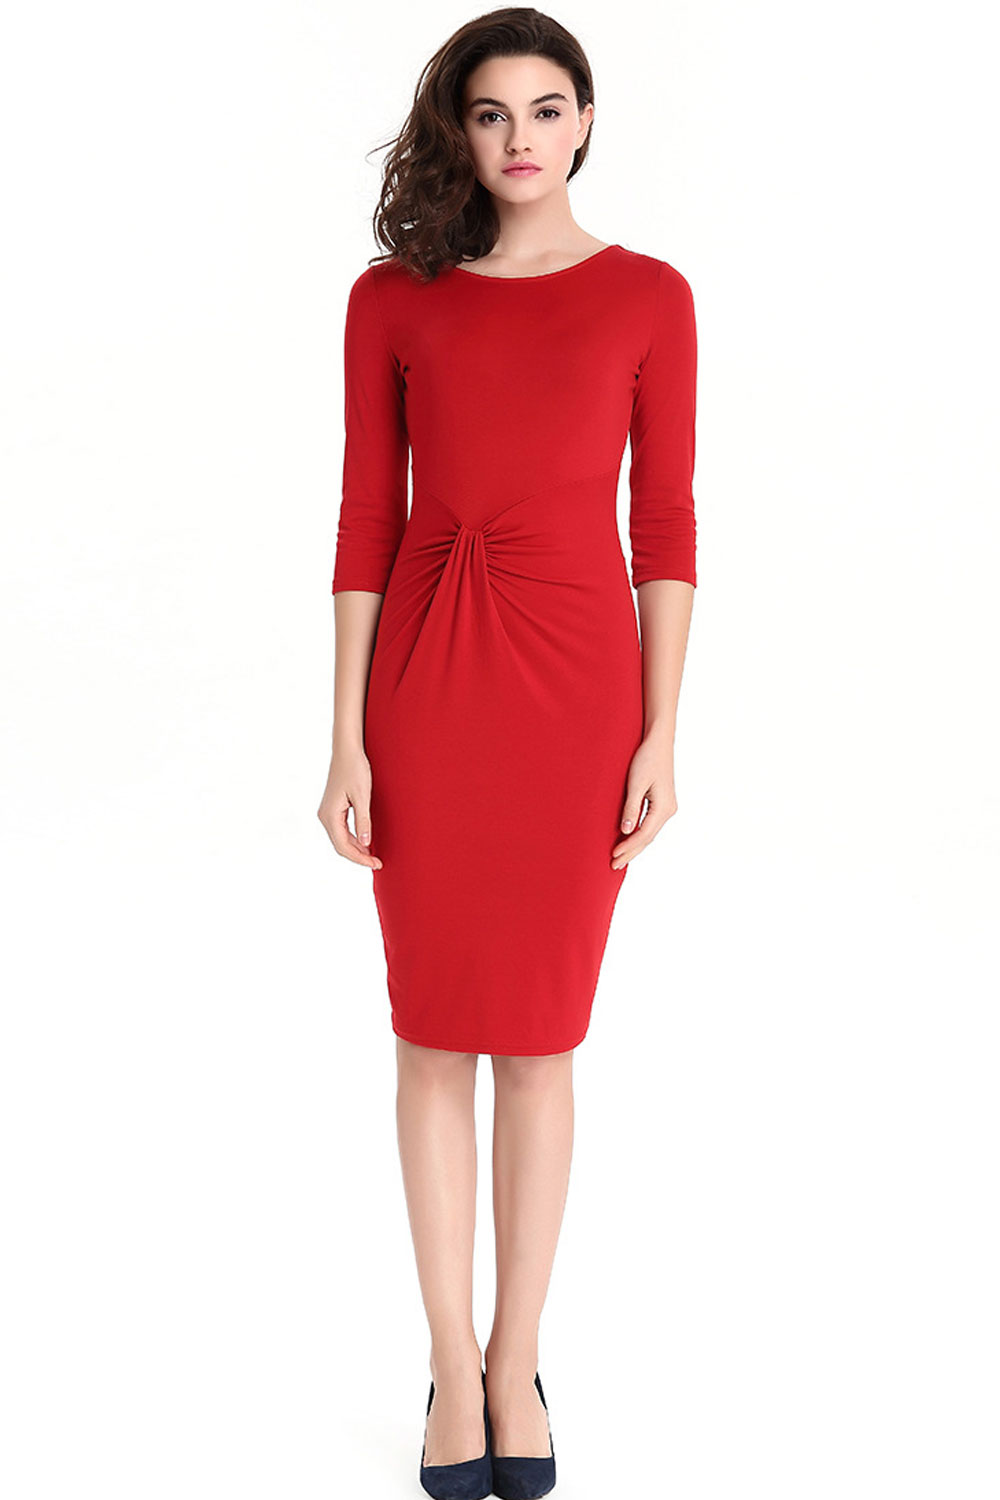 casual red knee length dress